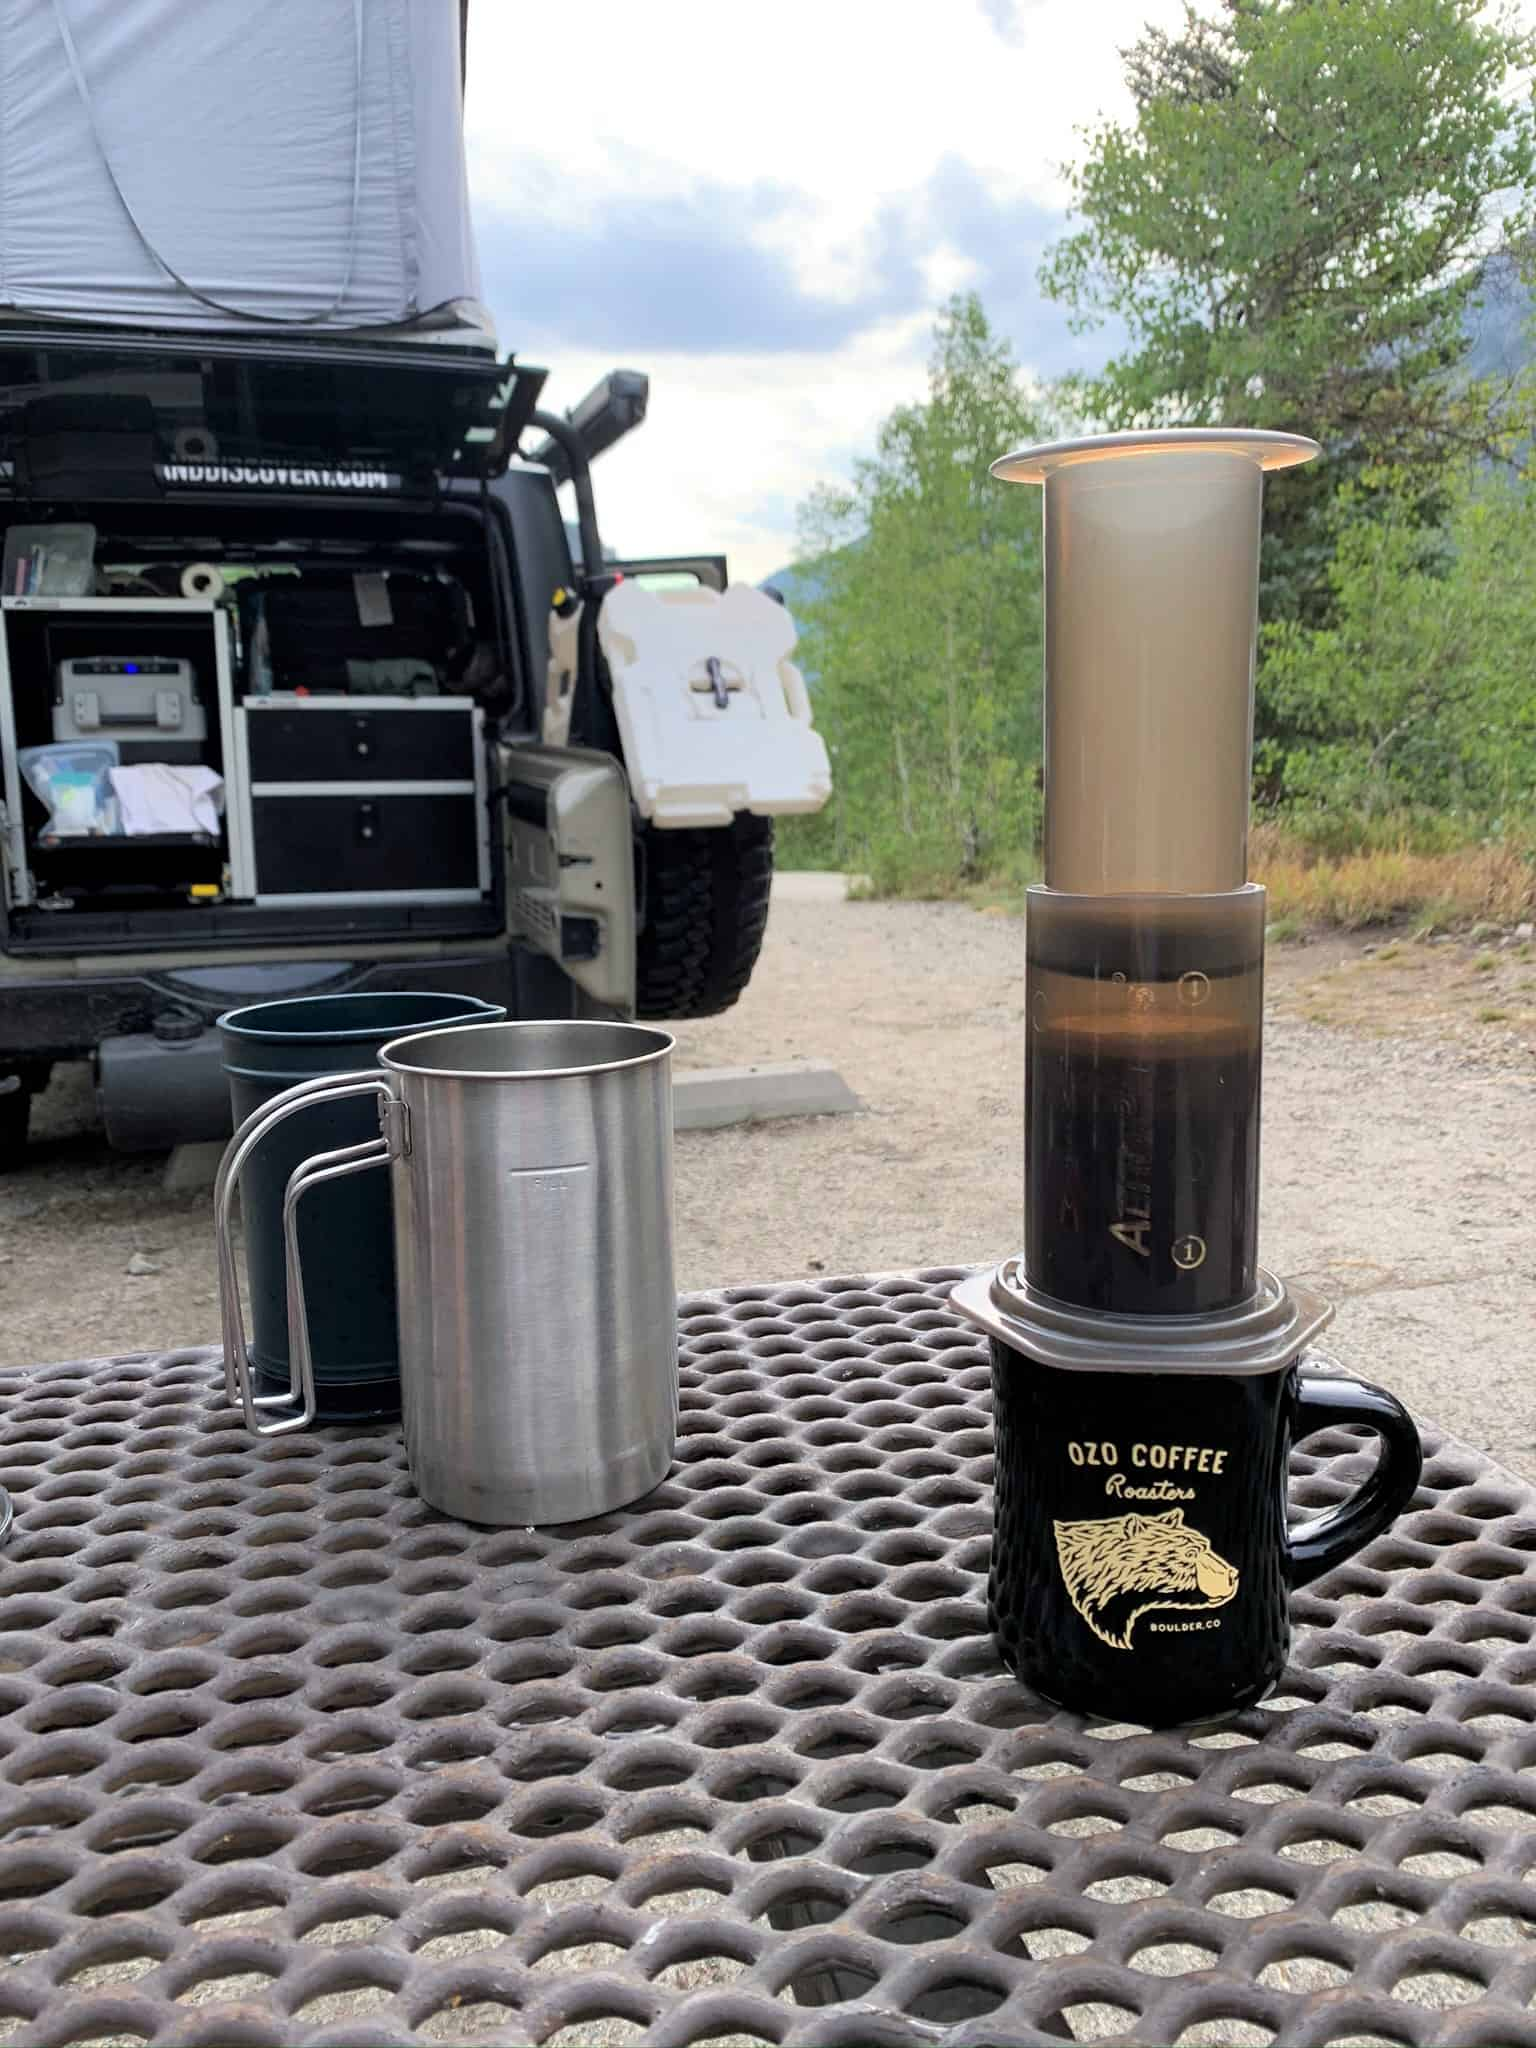 The AeroPress coffee maker brewing a cup of coffee at a campsite with a Jeep camper and some trees in the background